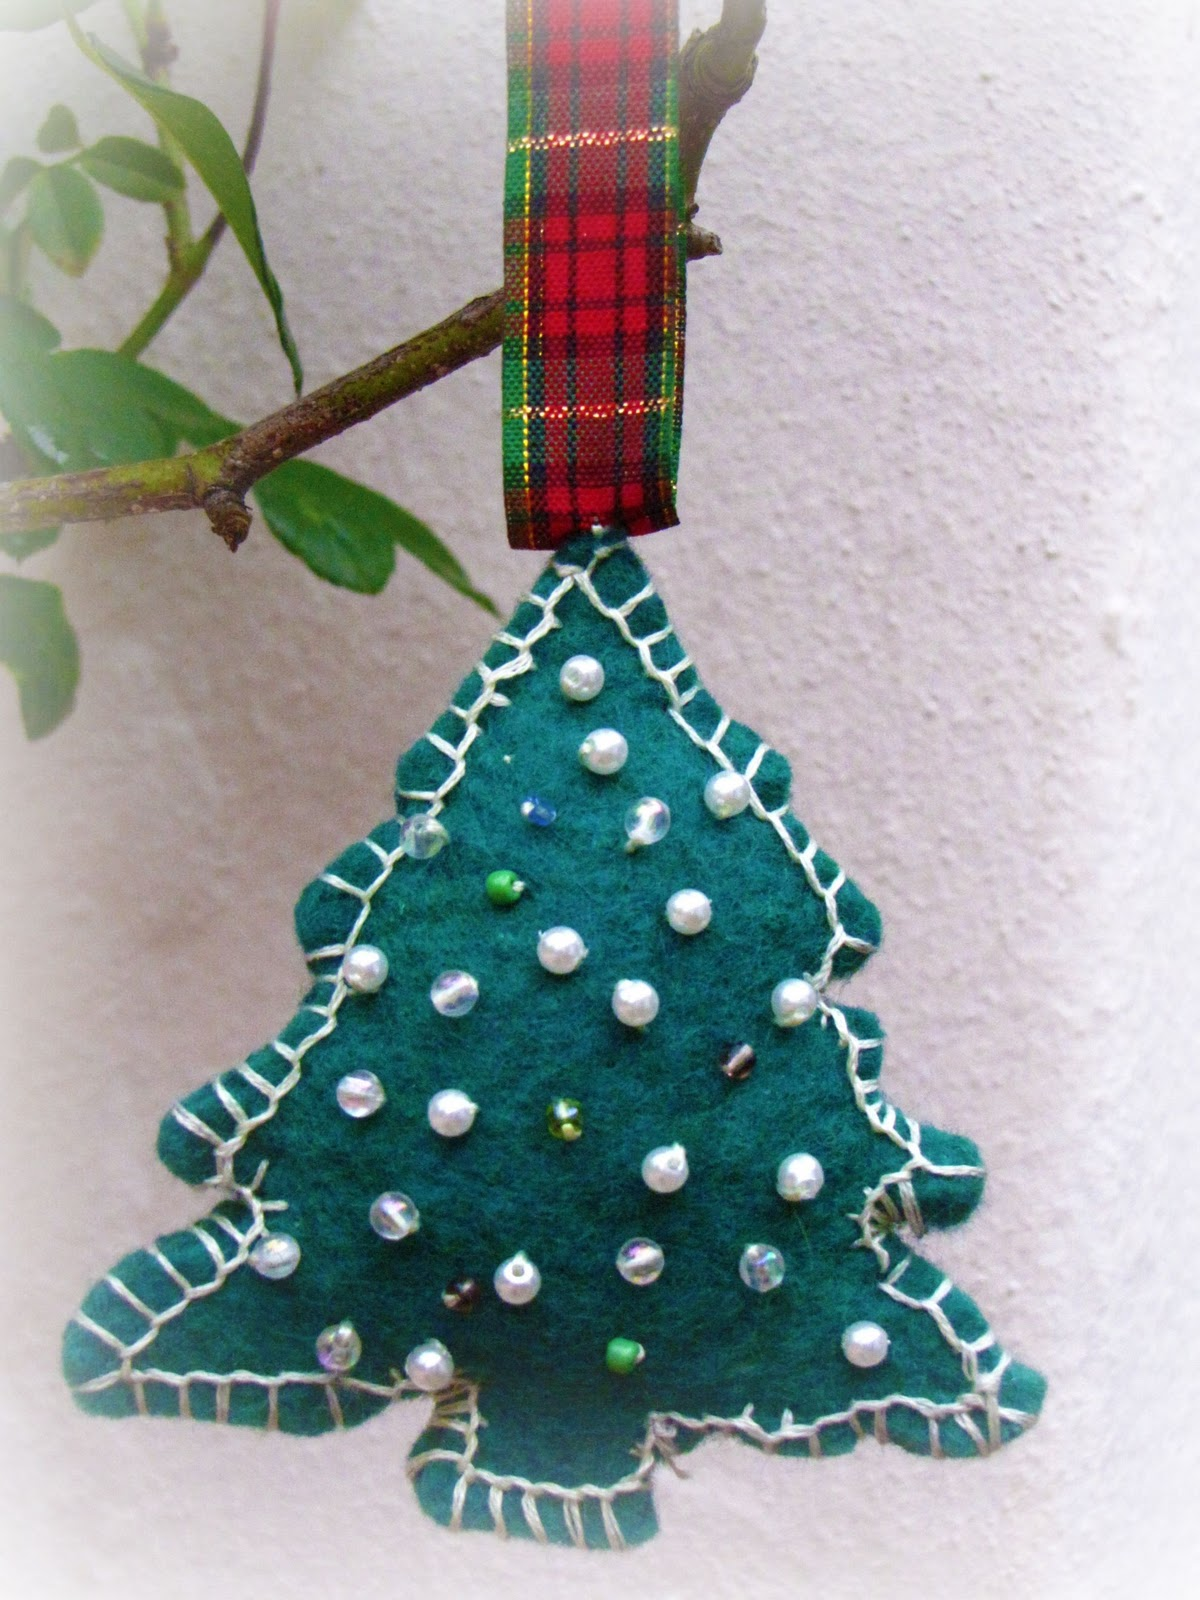 Home Made Christmas Tree Decorations Of Wip Wednesday Felt Christmas Tree Ornament Tutorial